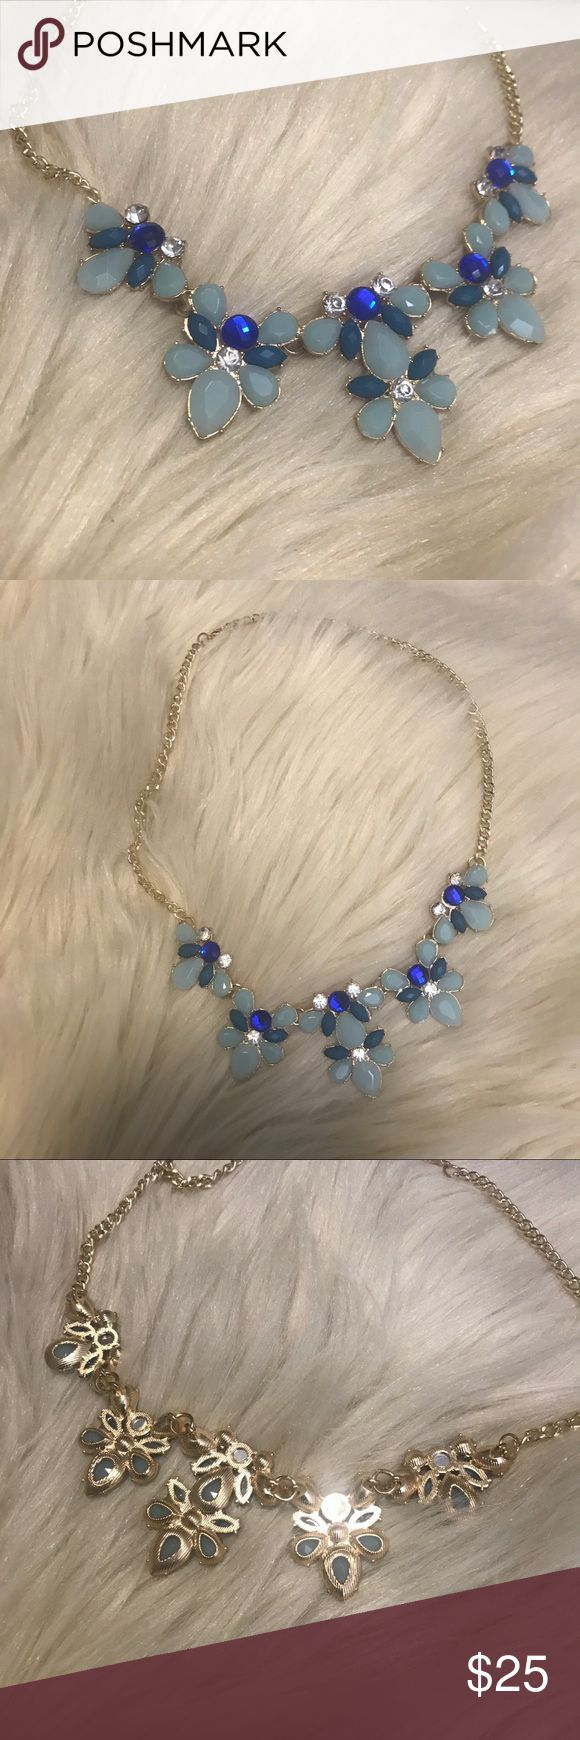 Blue & Gold gemstone statement necklace BNWT! PAWSitively Posh Boutique Jewelry Necklaces